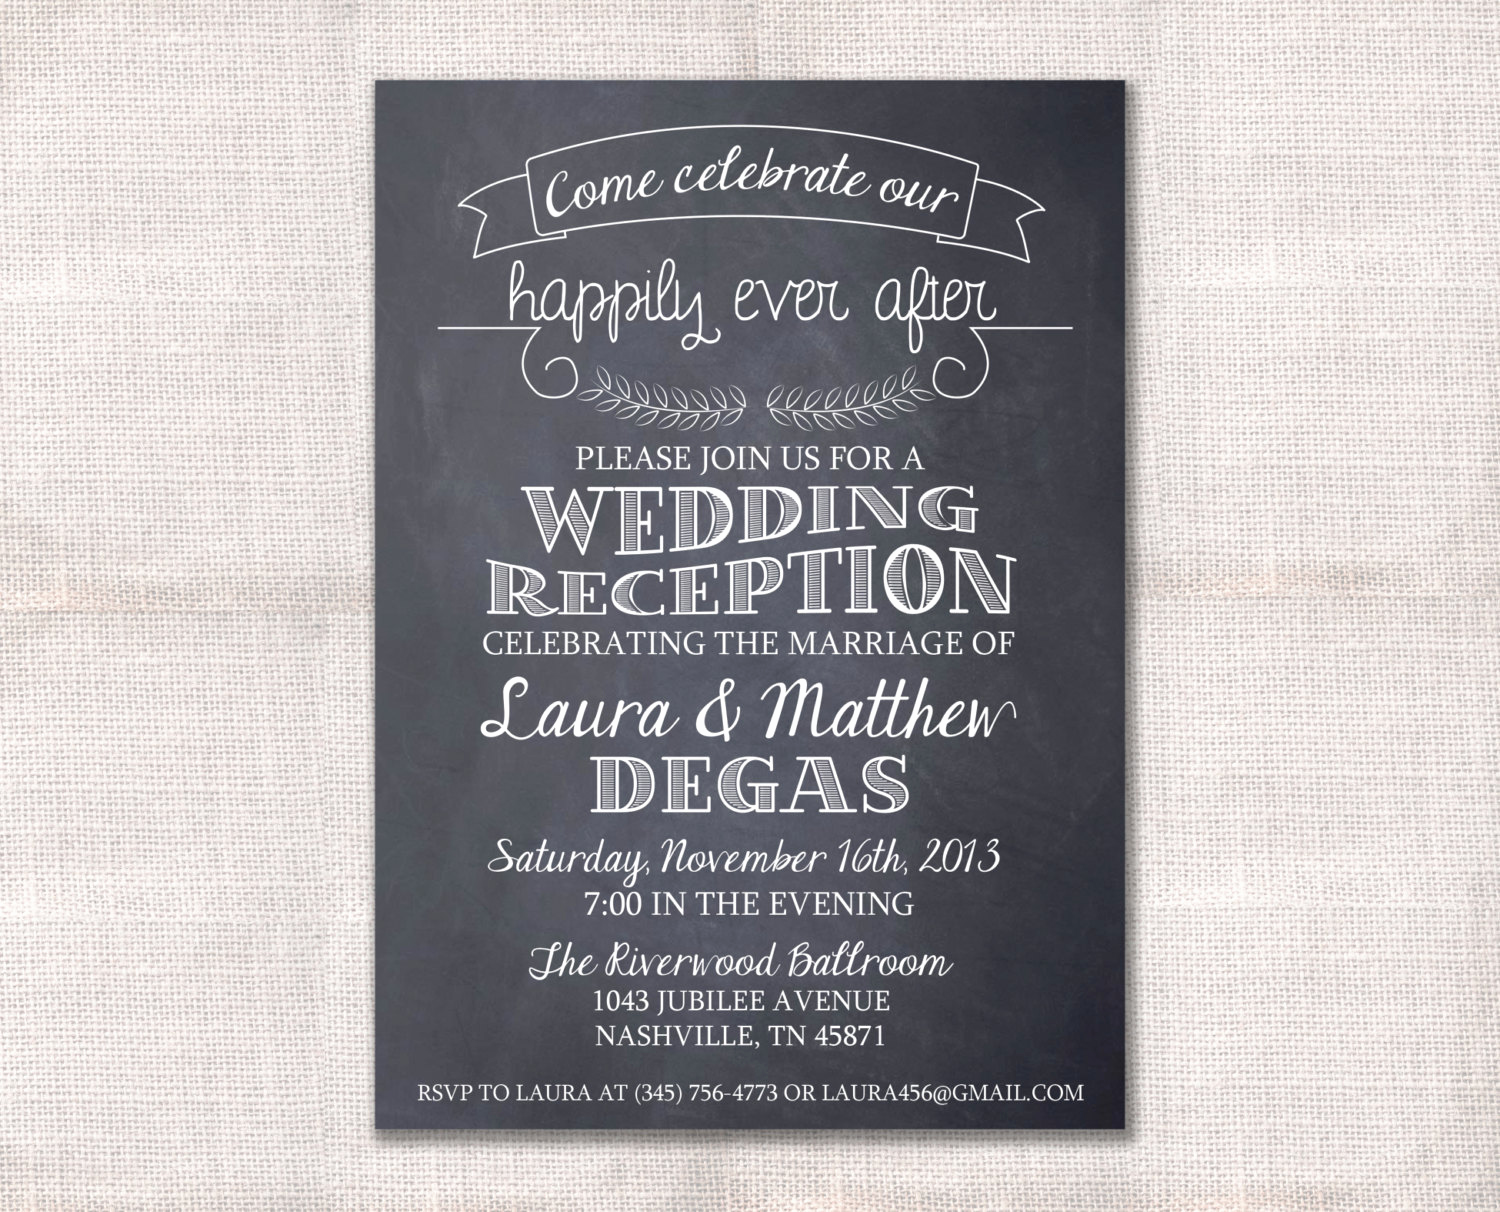 Invitation Message for Party Fresh Wedding Reception Celebration after Party Invitation Custom